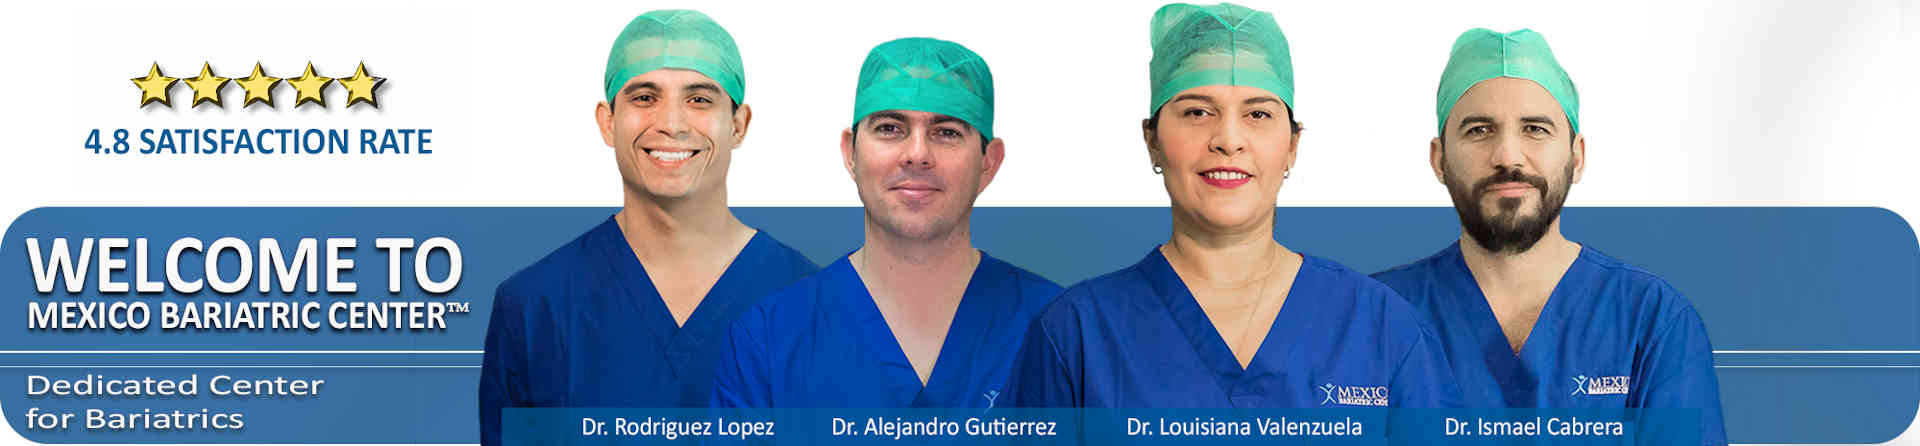 Mexico Bariatric Center Reviews and Satisfaction Rating